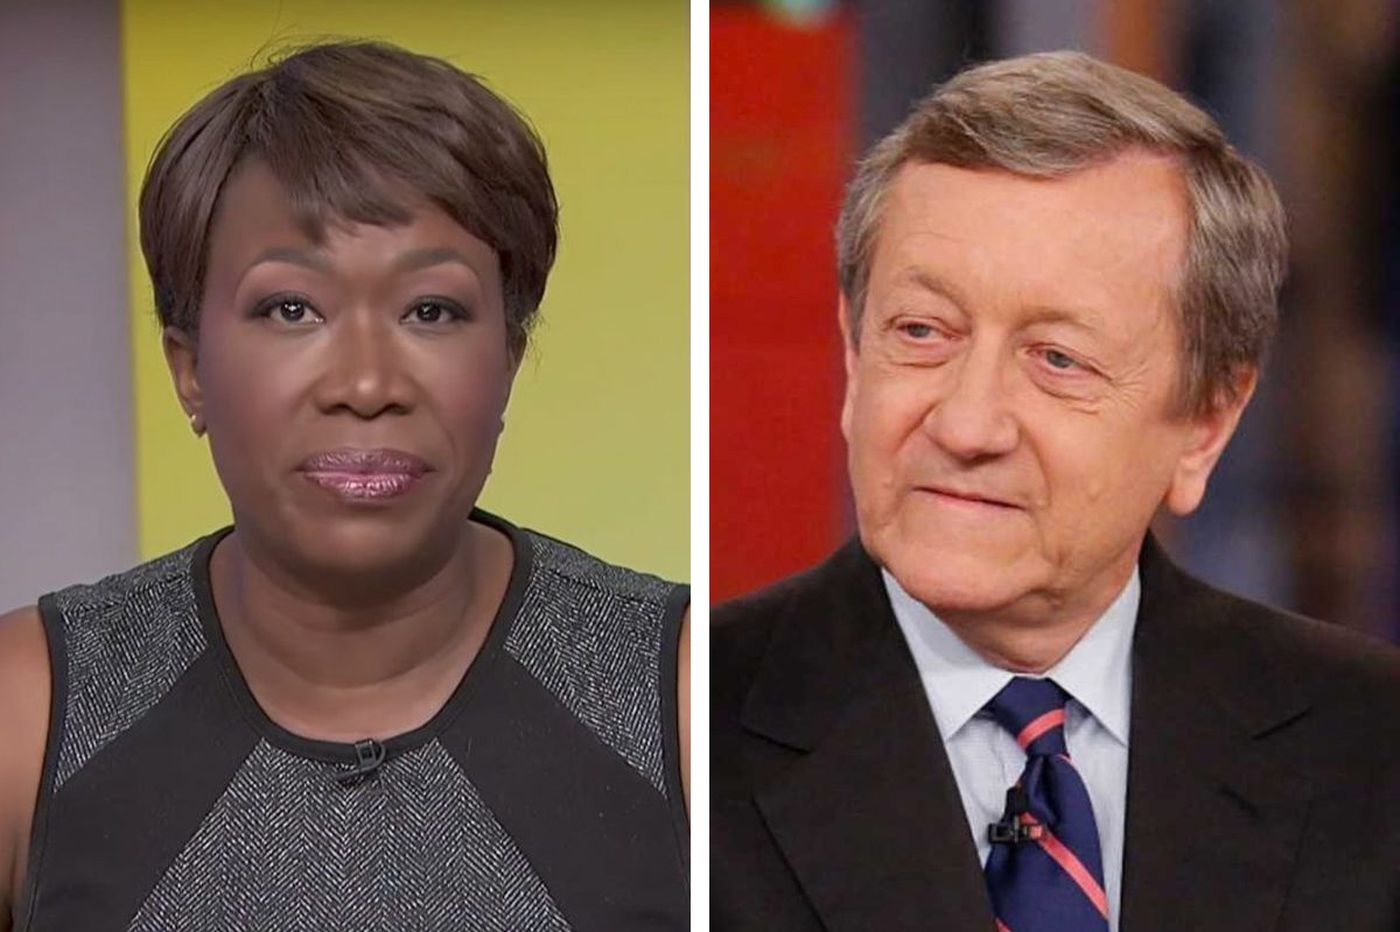 MSNBC host Joy Reid sorry for anti-gay posts, ABC News' Brian Ross suspended for Trump report